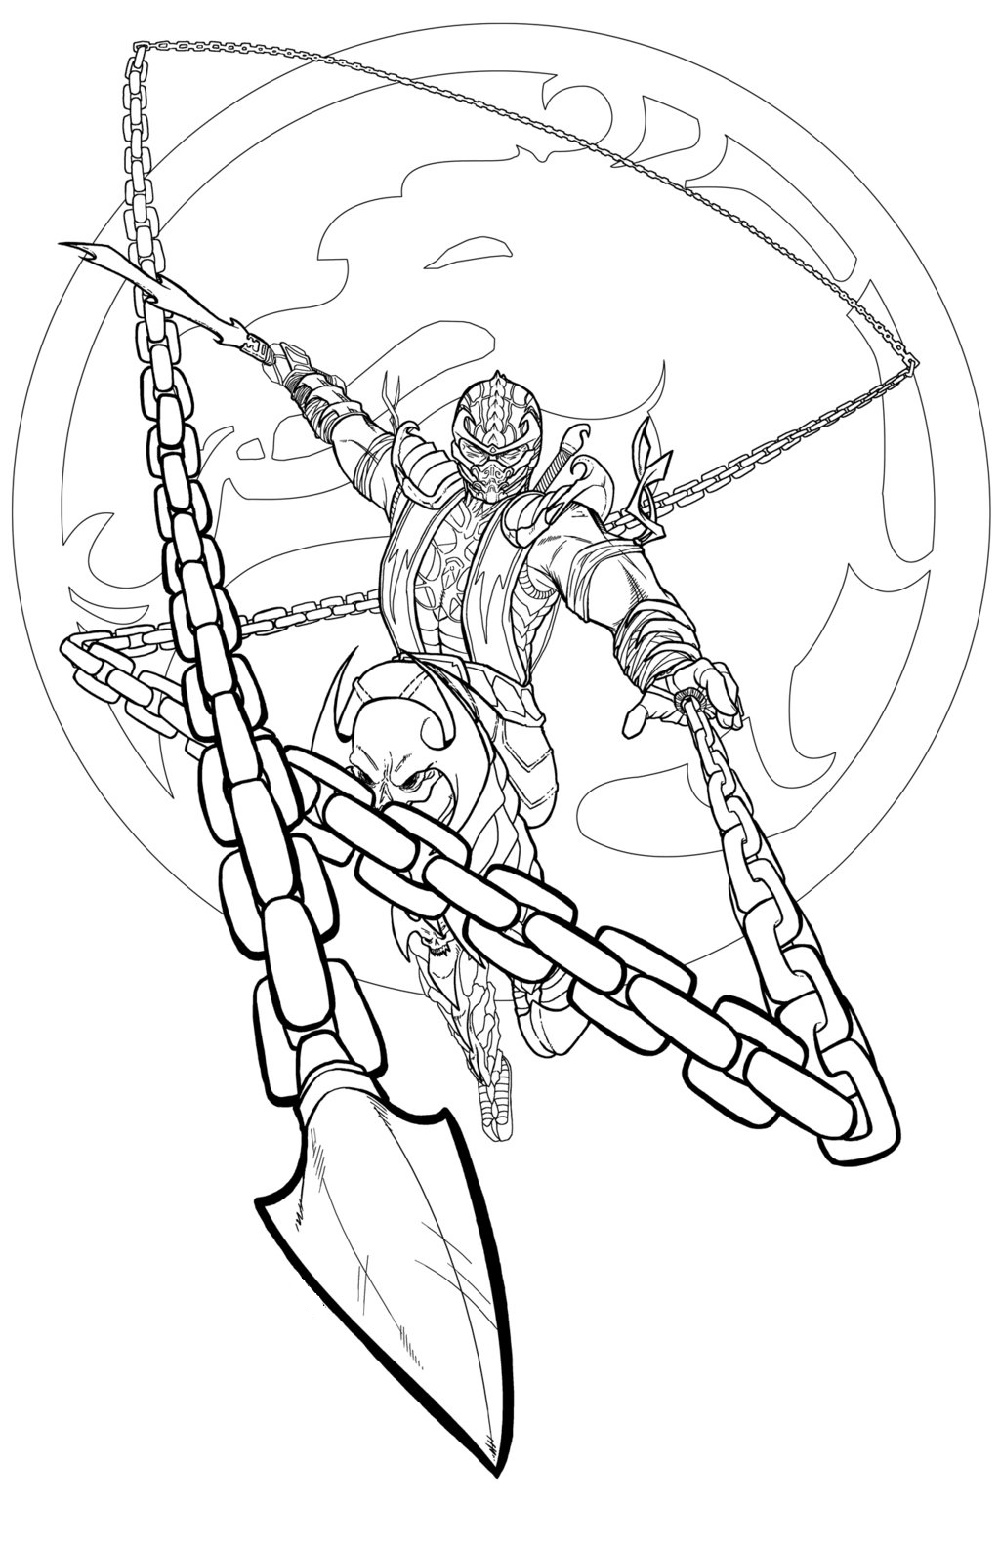 mortal kombat scorpion coloring pages coloring pages 2019 coloring home mortal kombat scorpion coloring pages